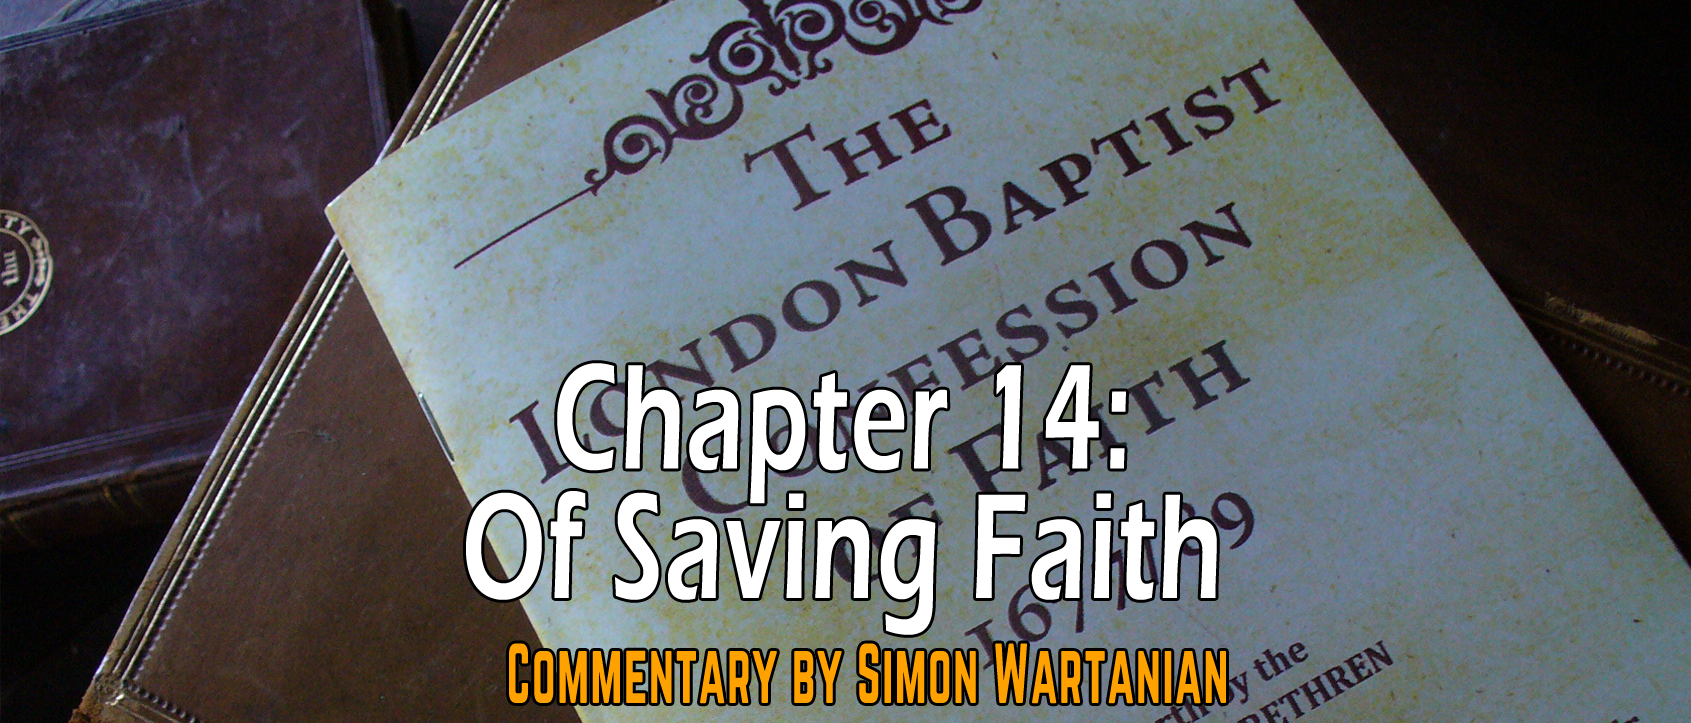 1689 Baptist Confession Chapter 14: Of Saving Faith - Commentary